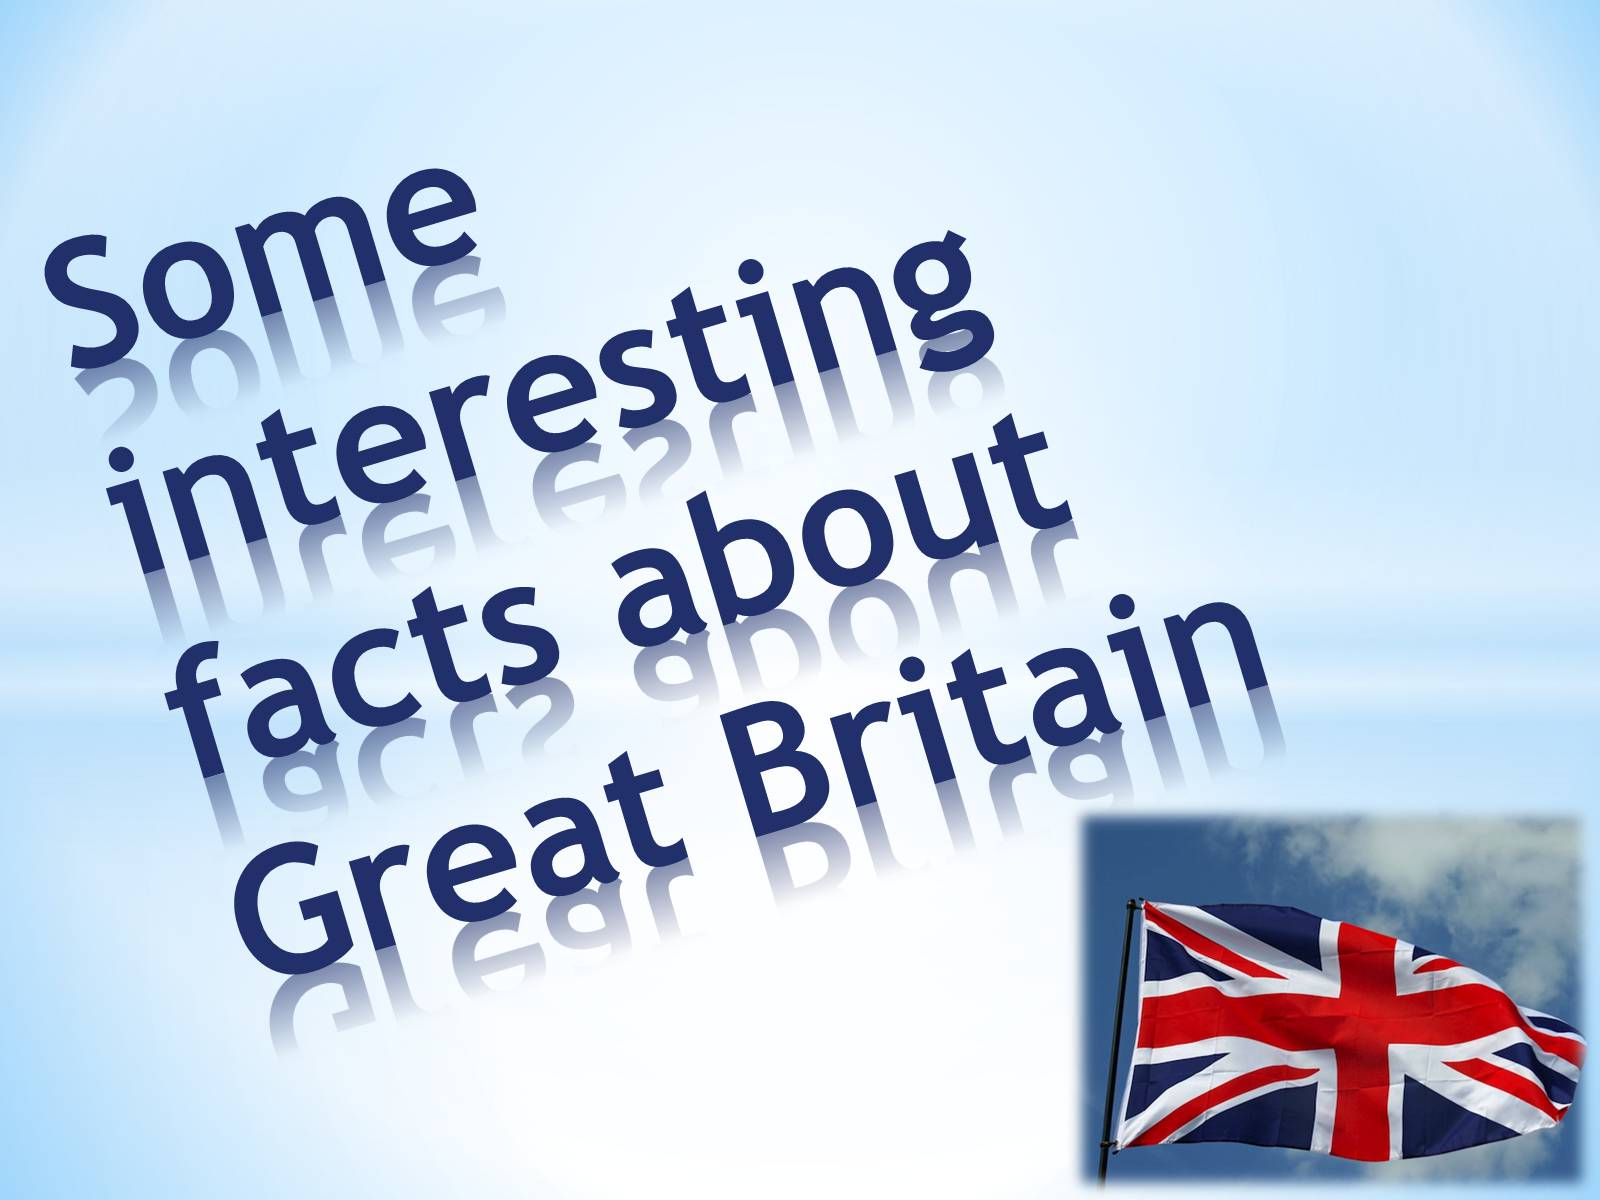 Презентація на тему «Some interesting facts about Great Britain»